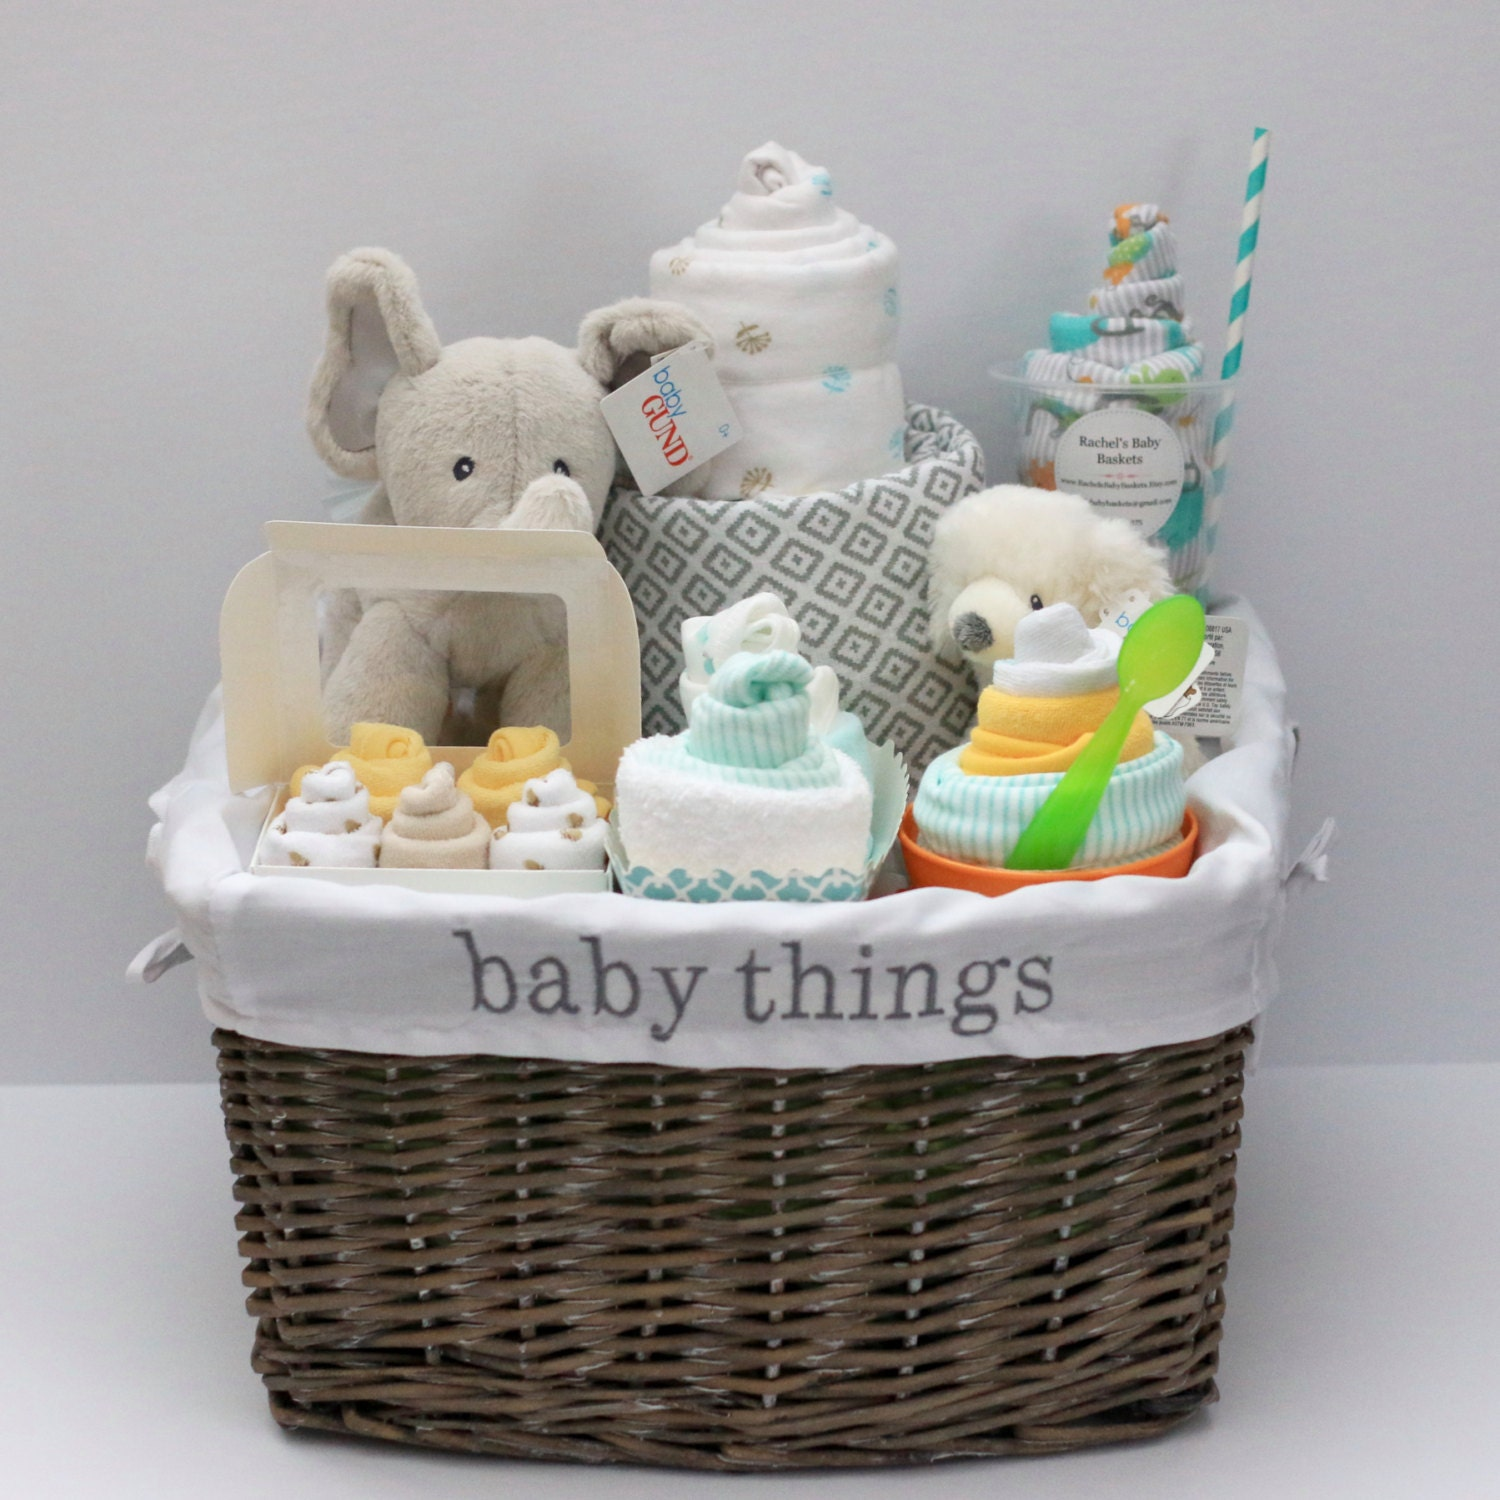 Baby Shower Gifts Whether it's a boy, a girl, or a surprise, celebrate all the cute to come with our baby shower ideas and gifts any mom or dad will dote over. From practical to adorable, find the best gifts .